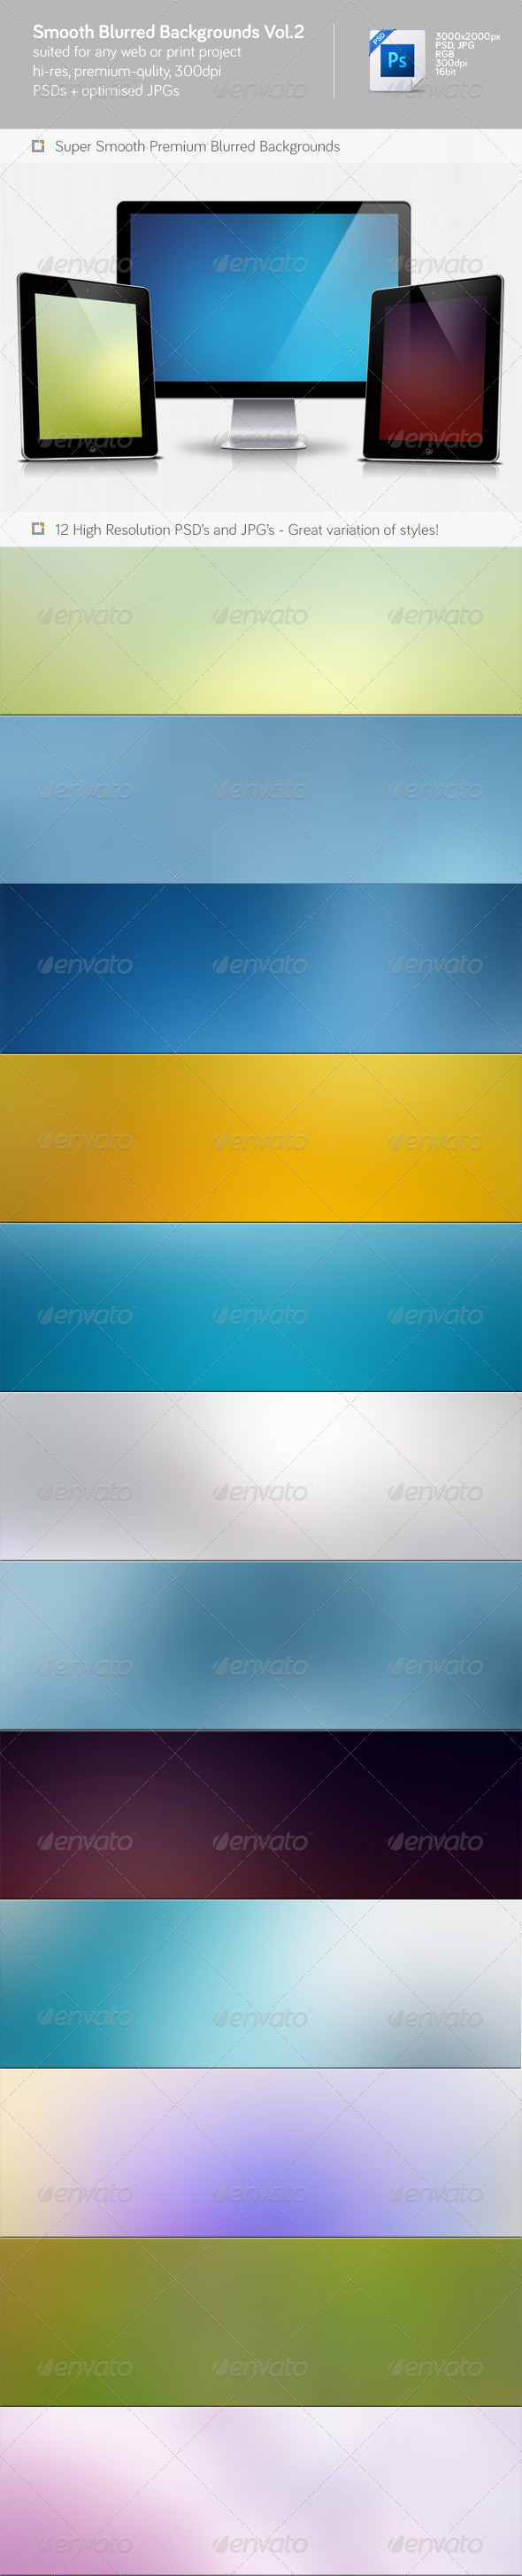 Smooth Blurred Backgrounds Vol.2 - Abstract Backgrounds